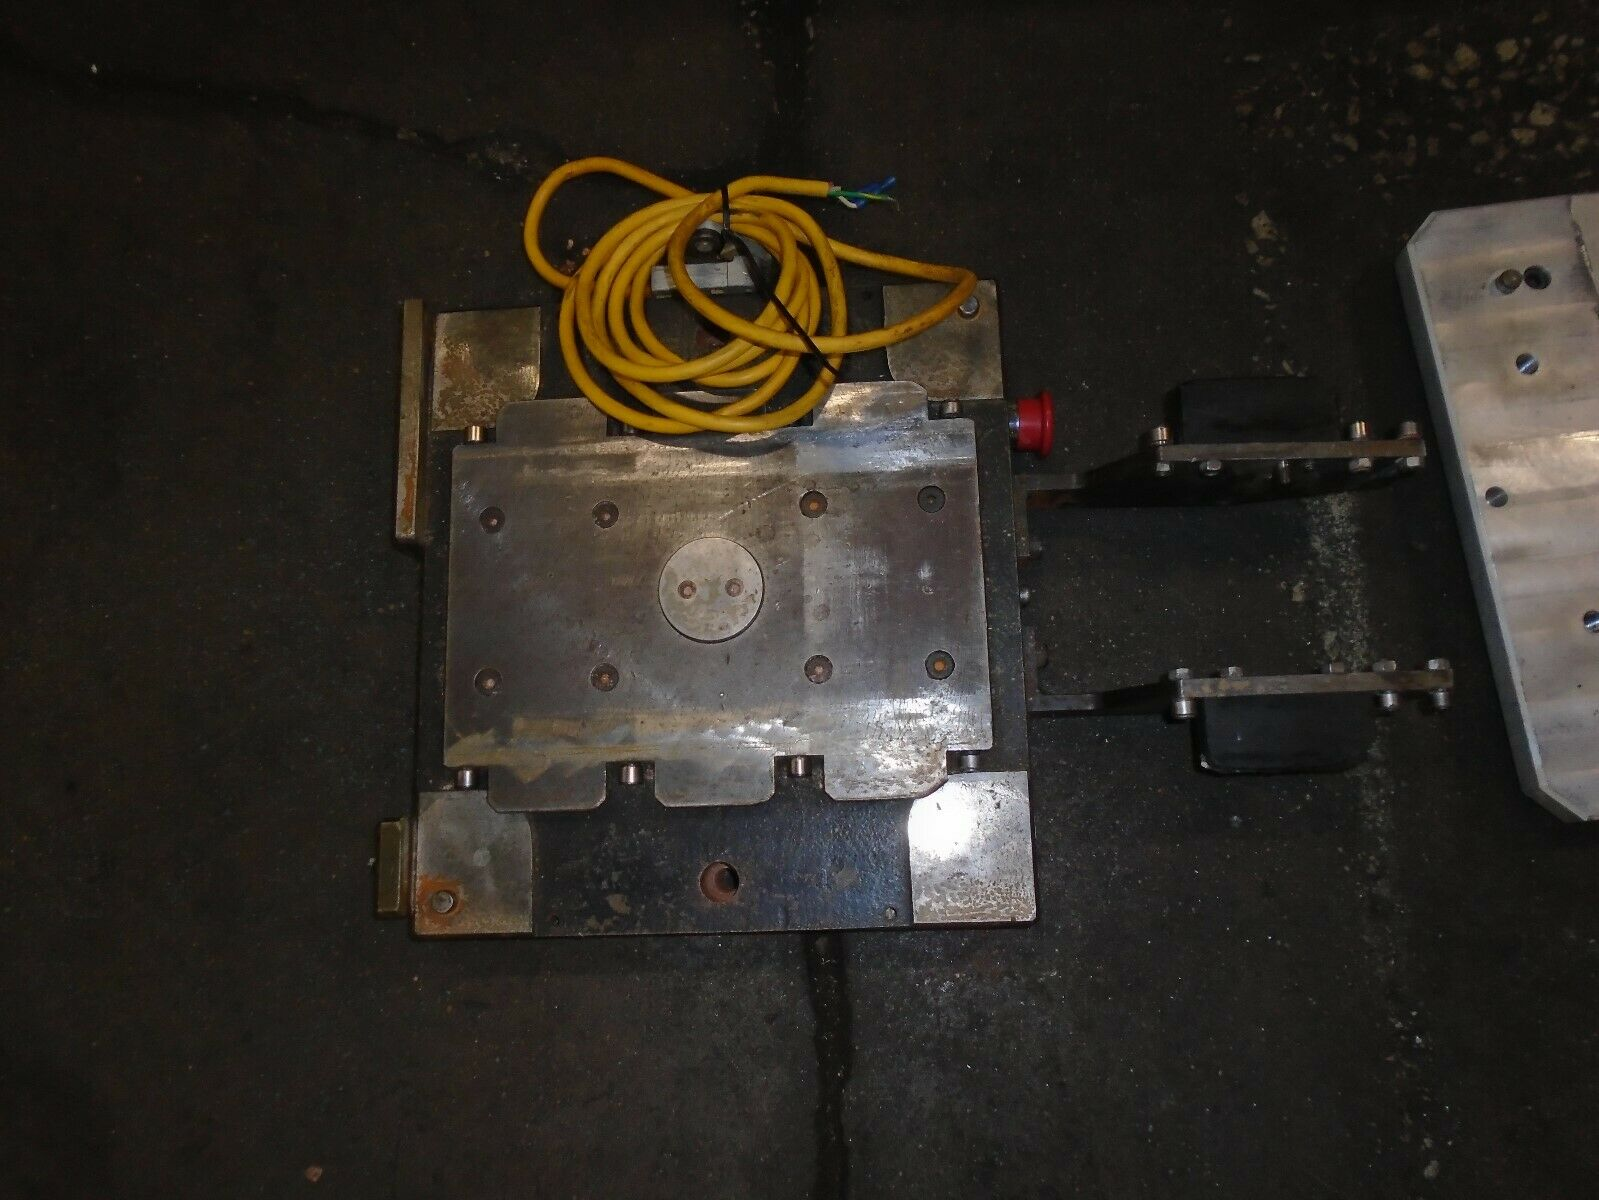 Midaco Series 20 Pallet Changer With 3 Pallets & Receiver - Image 9 of 9